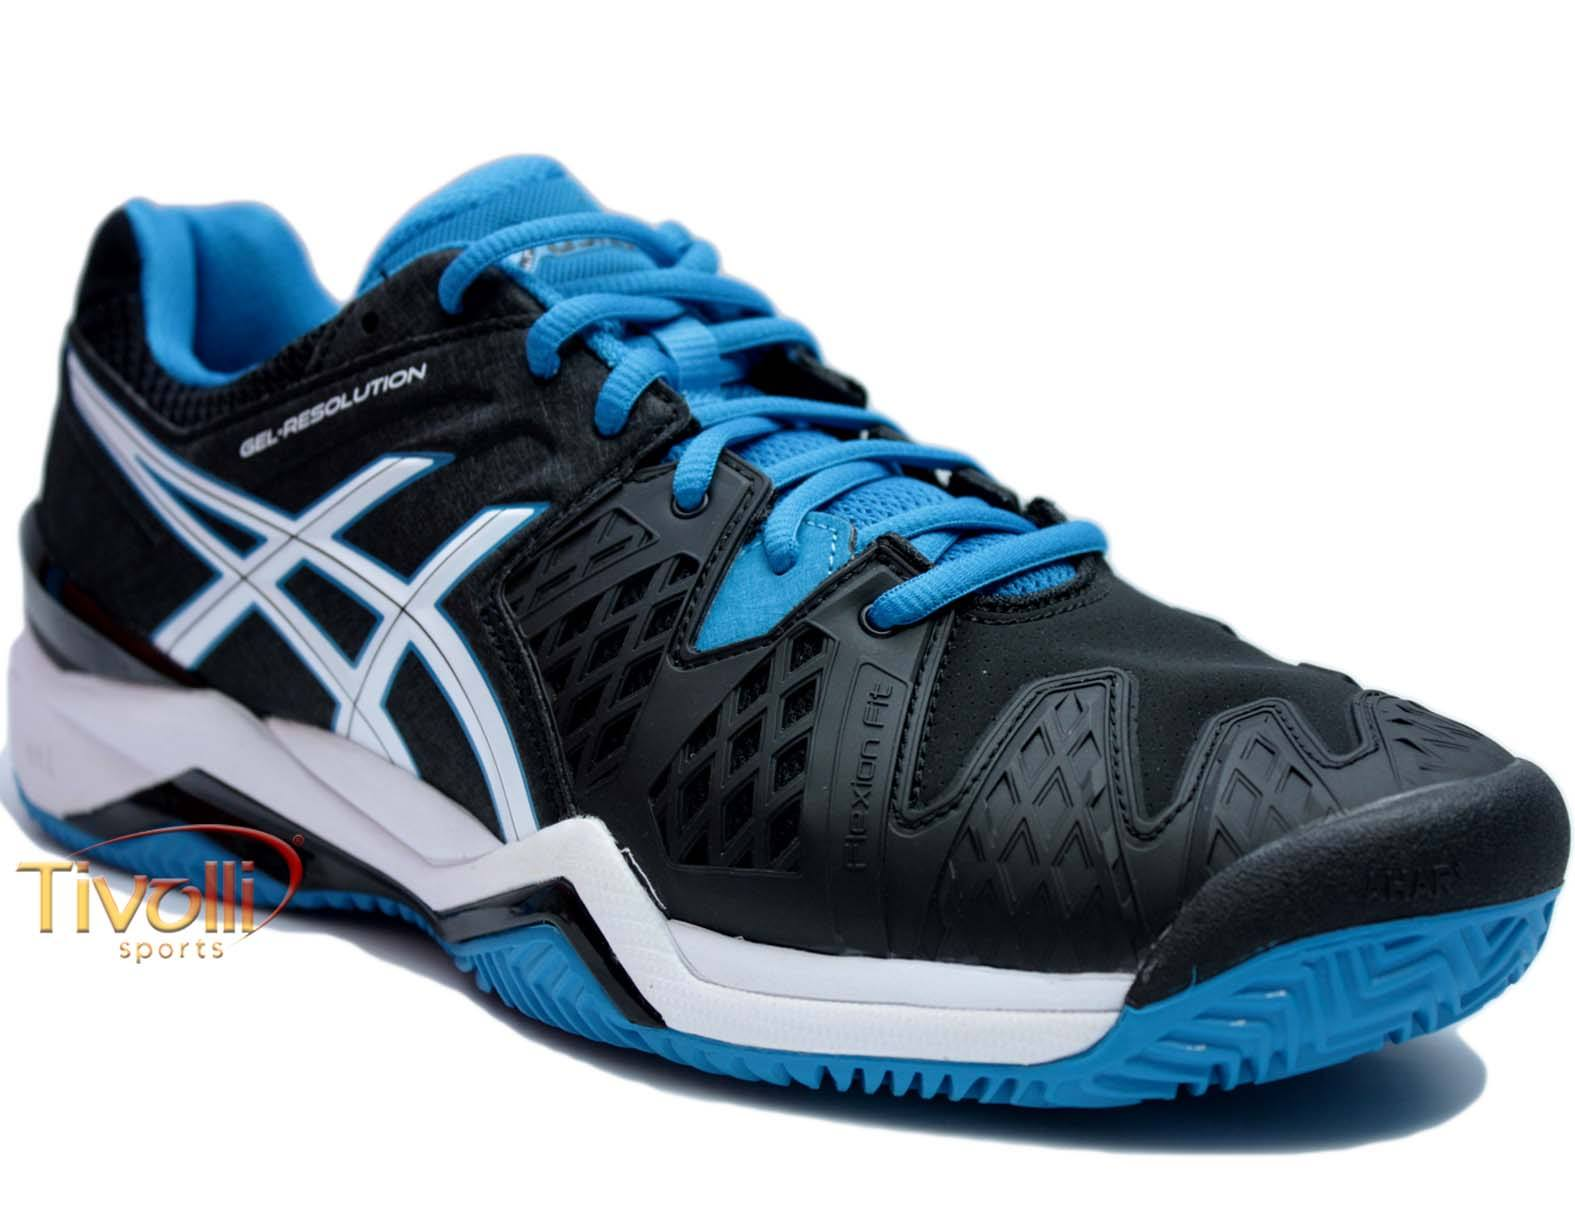 Raquete Mania   Tênis Asics   Gel Resolution 6 Clay Preto a3cd2e2c1abc0